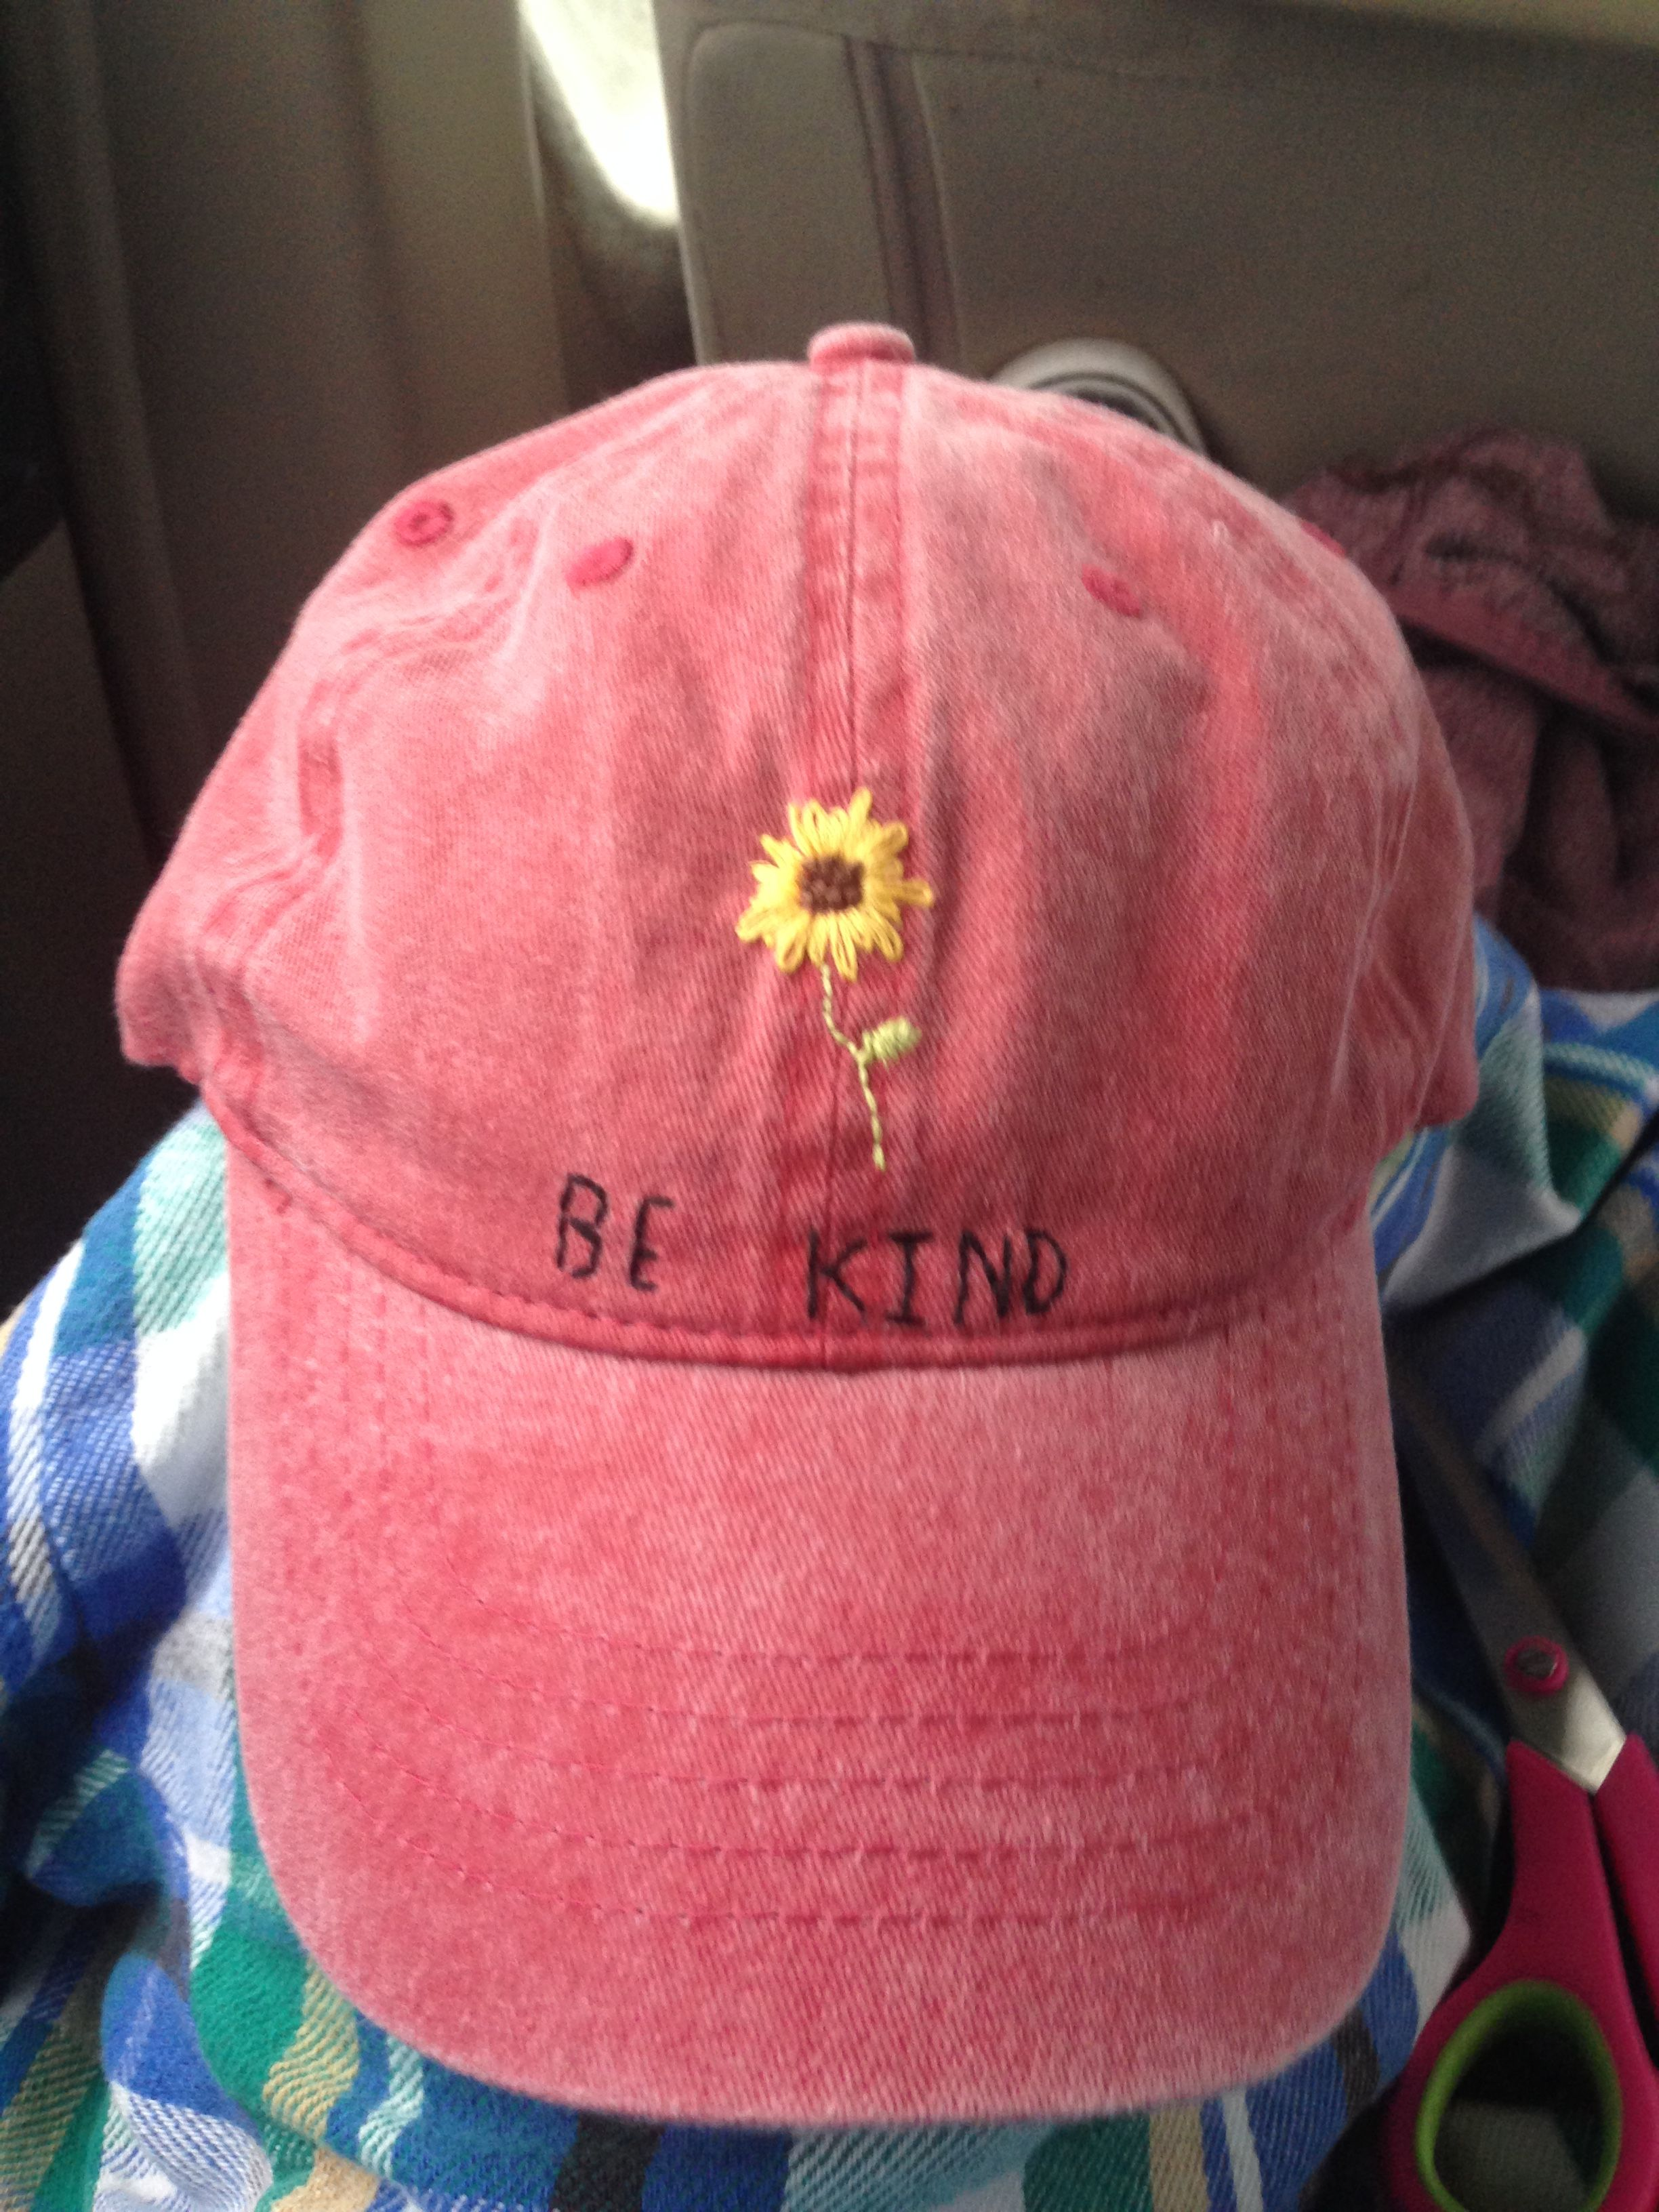 Hat Embroidery Be Kind Sunflower Hat Embroidery Embroidery Tshirt Embroidery Designs Fashion